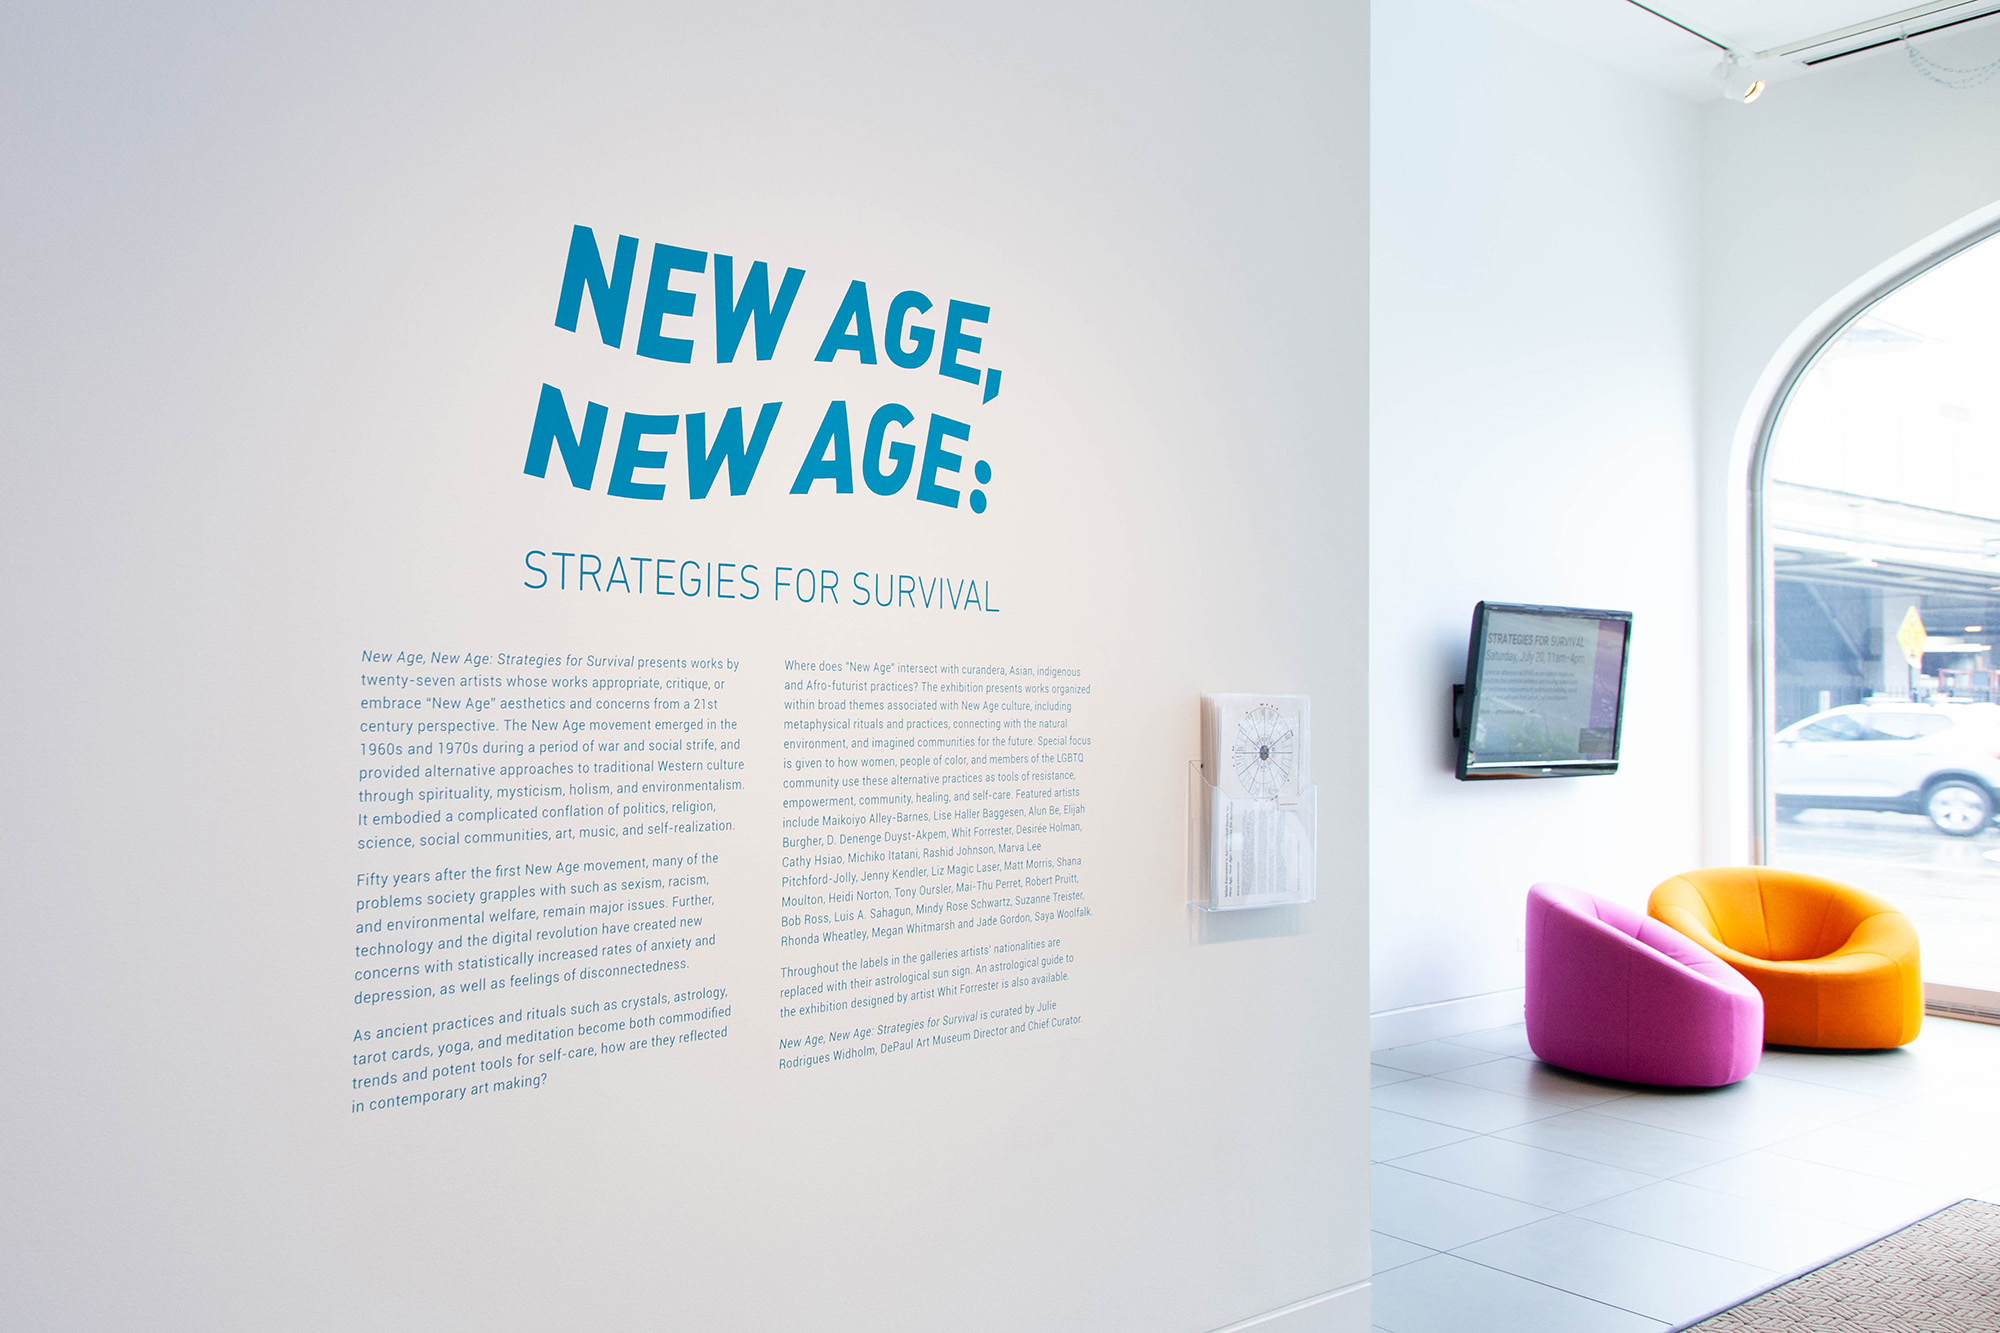 New Age, New Age: Strategies for Survival, installation view at DePaul Art Museum, 2019. Photo: DePaul Art Museum